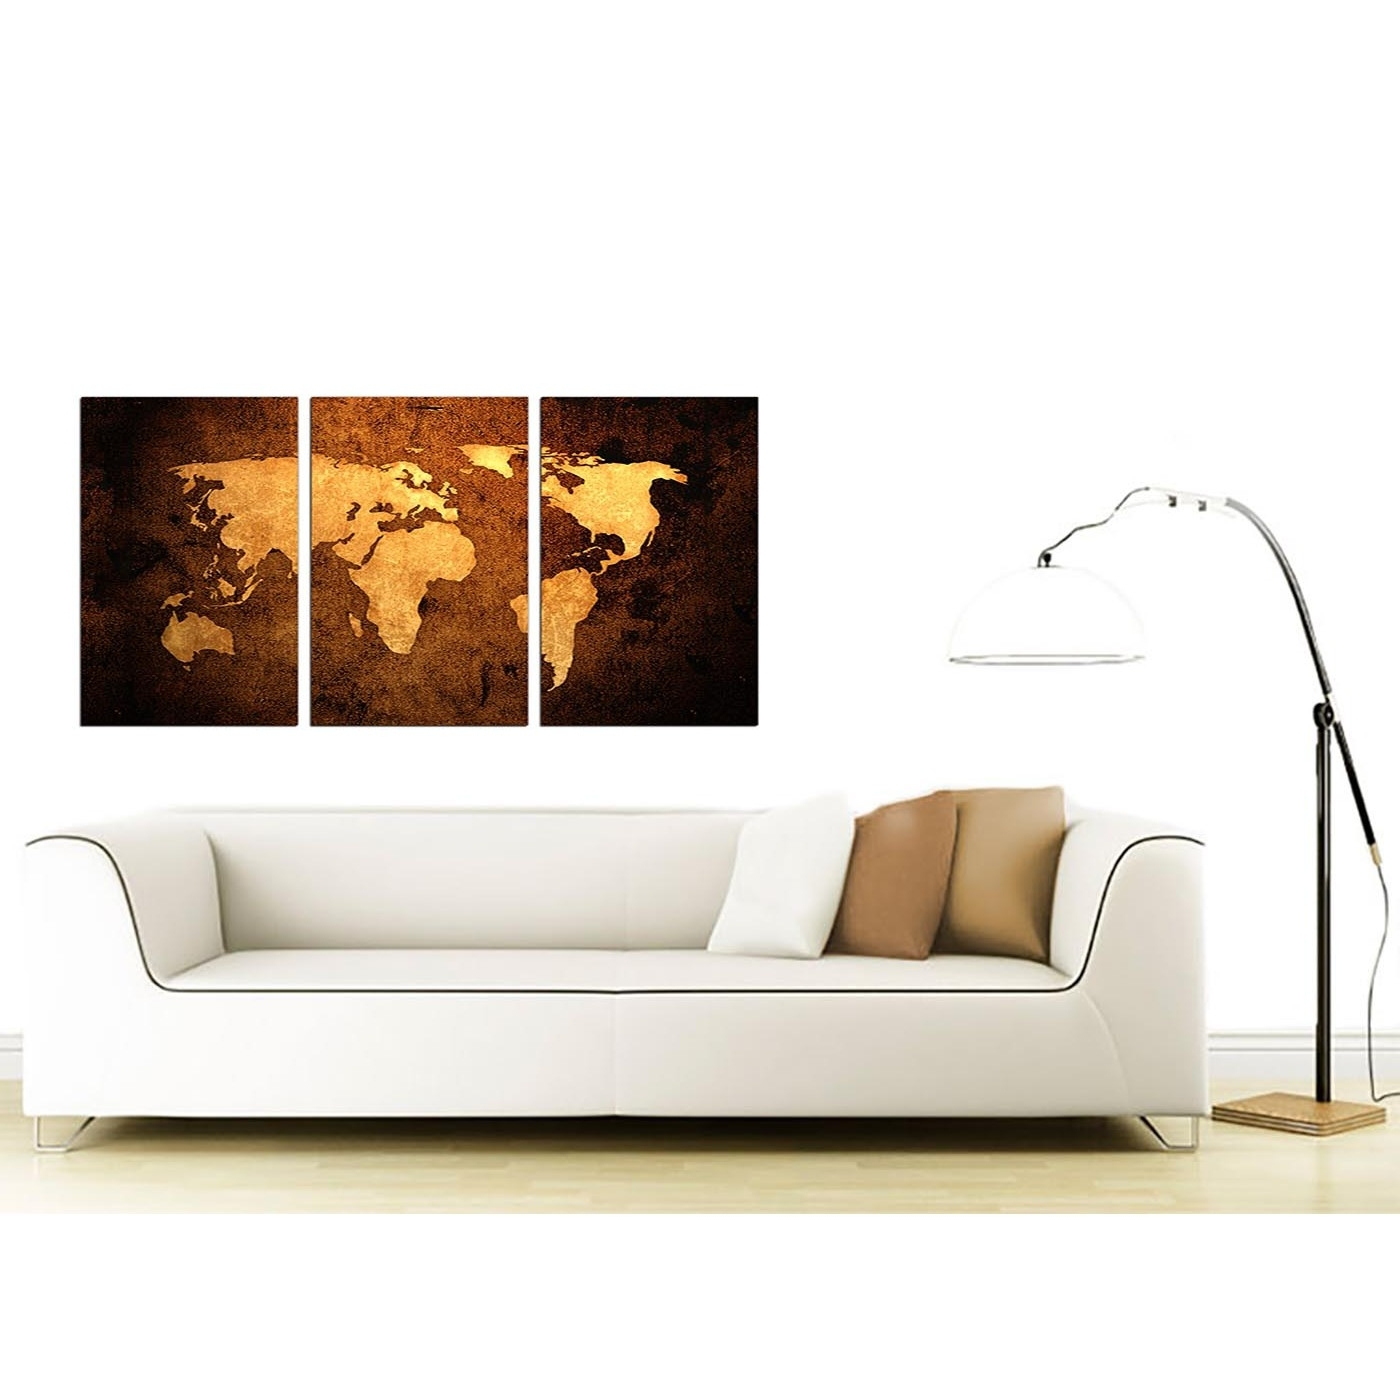 Trendy Canvas Wall Art Sets Pertaining To Vintage World Map Canvas Wall Art Set Of 3 For Your Bedroom (View 15 of 15)